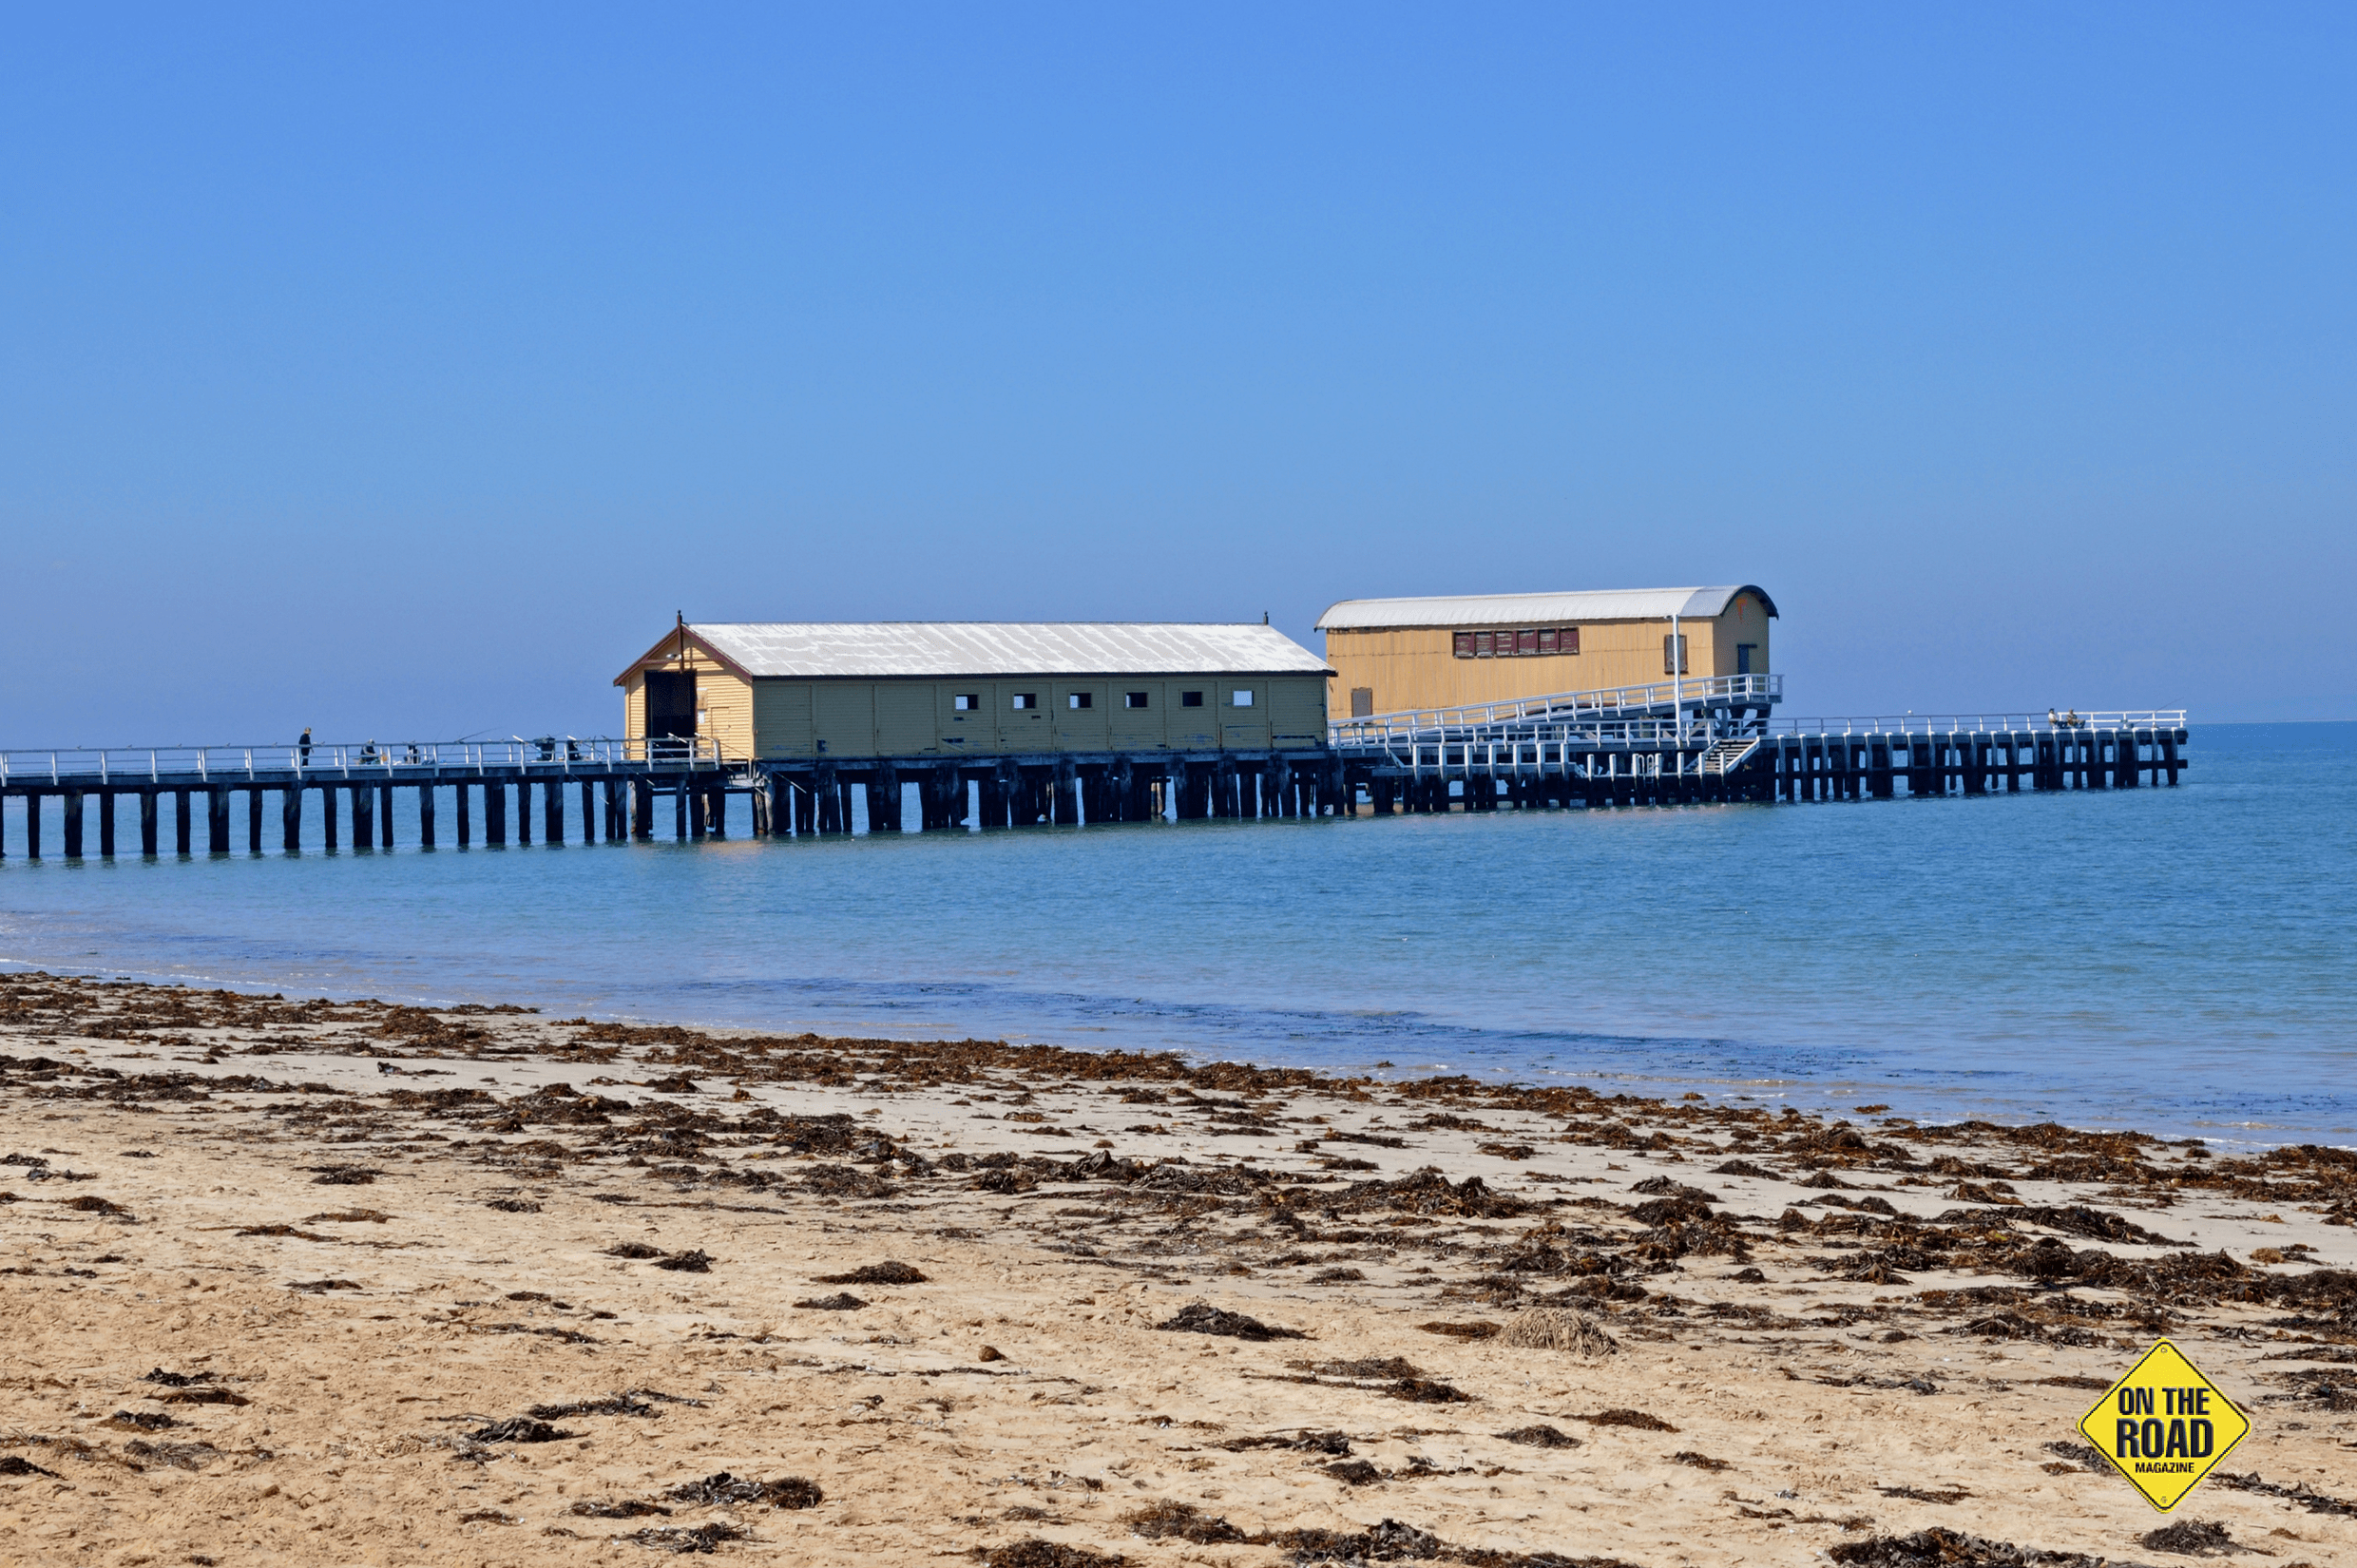 Former Steamer Wharf and Lifeboat station